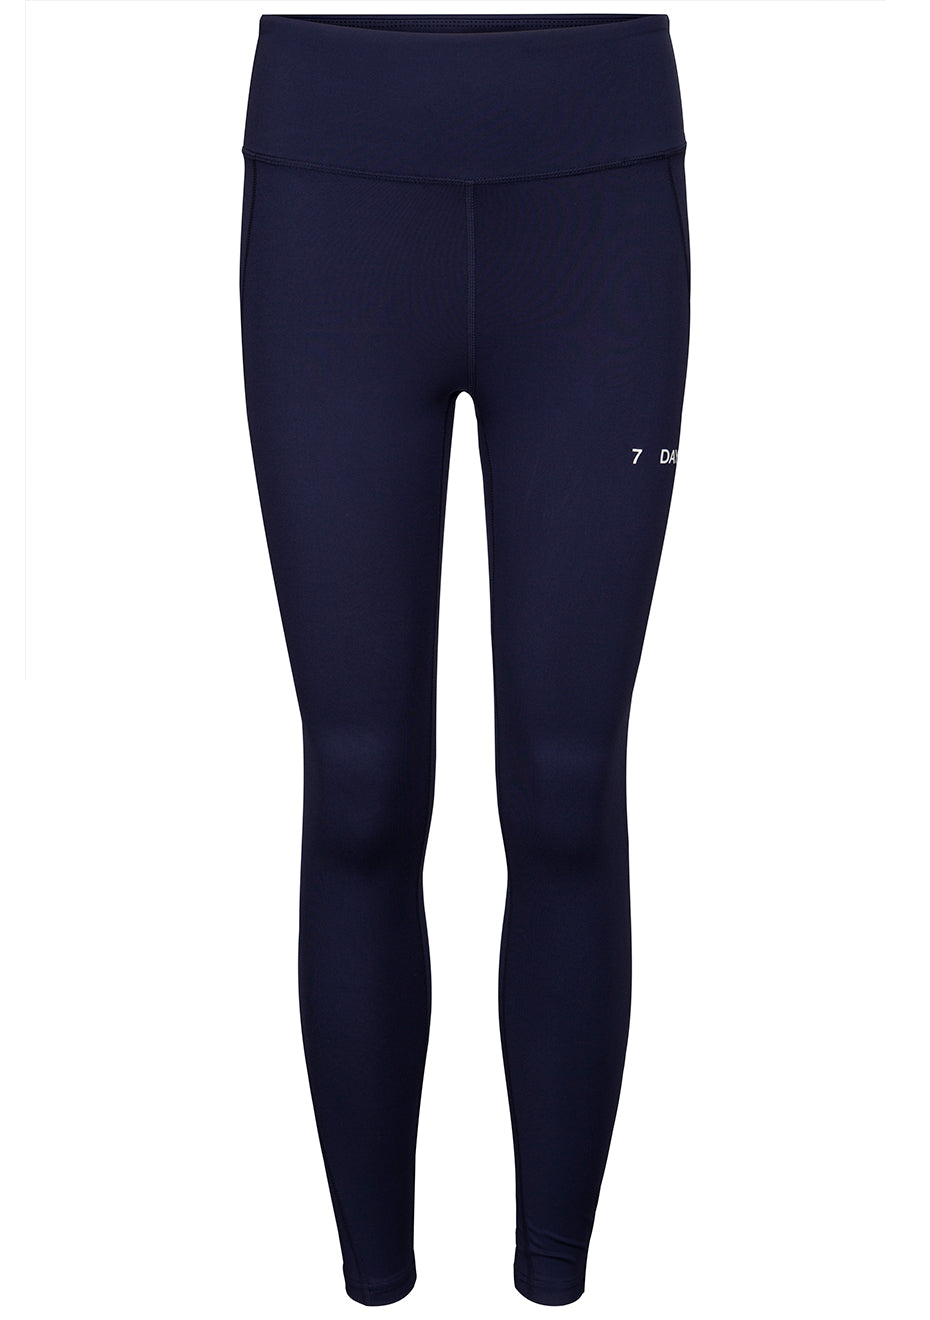 Navy Blue TKO High Waist Tights